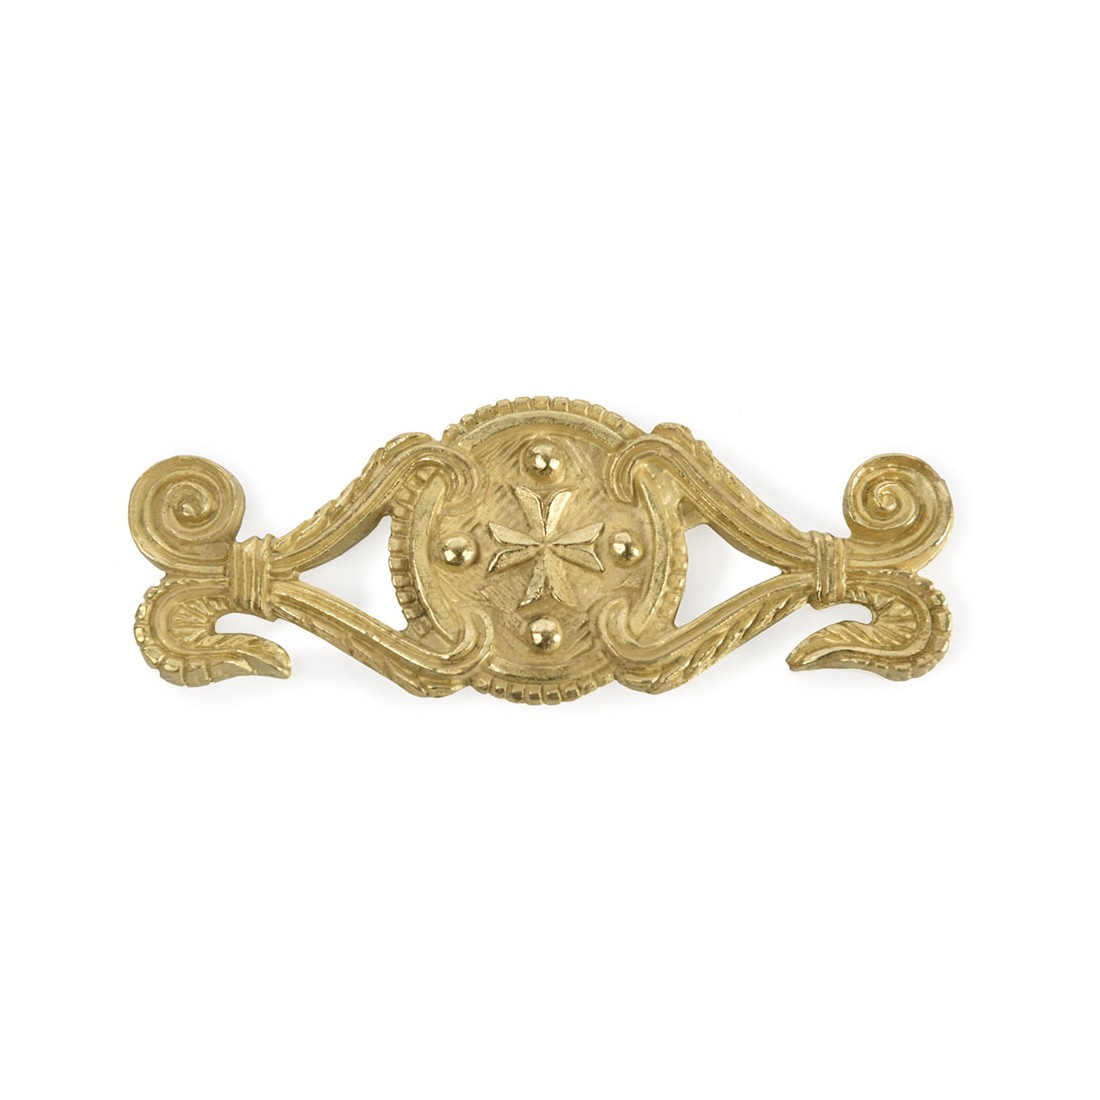 Brass decorations